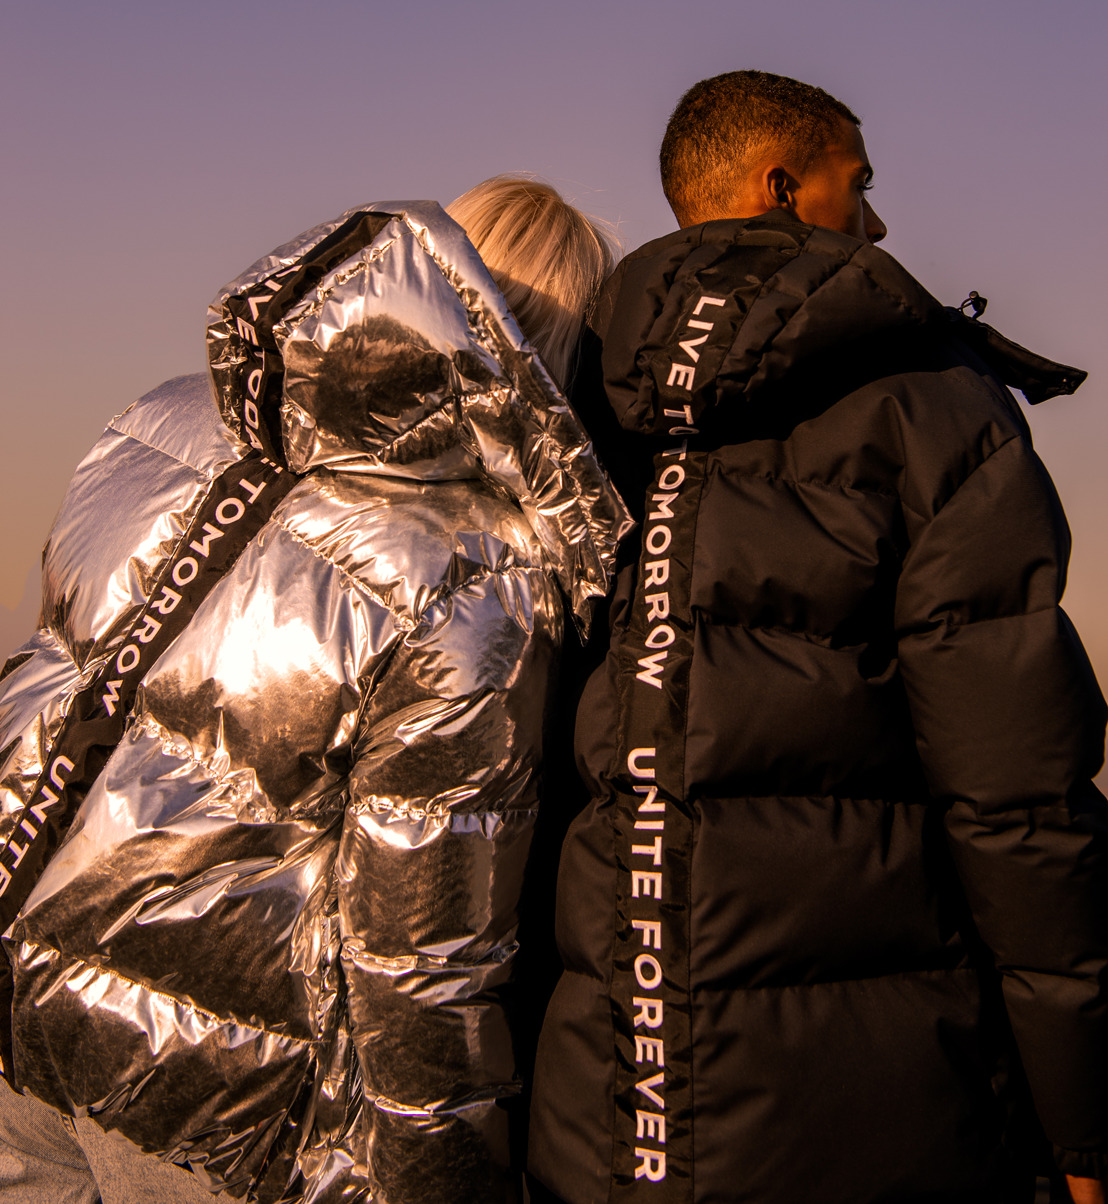 Stand out from the crowd and stay warm during the cold season with the exclusive Tomorrowland Puffer Jackets